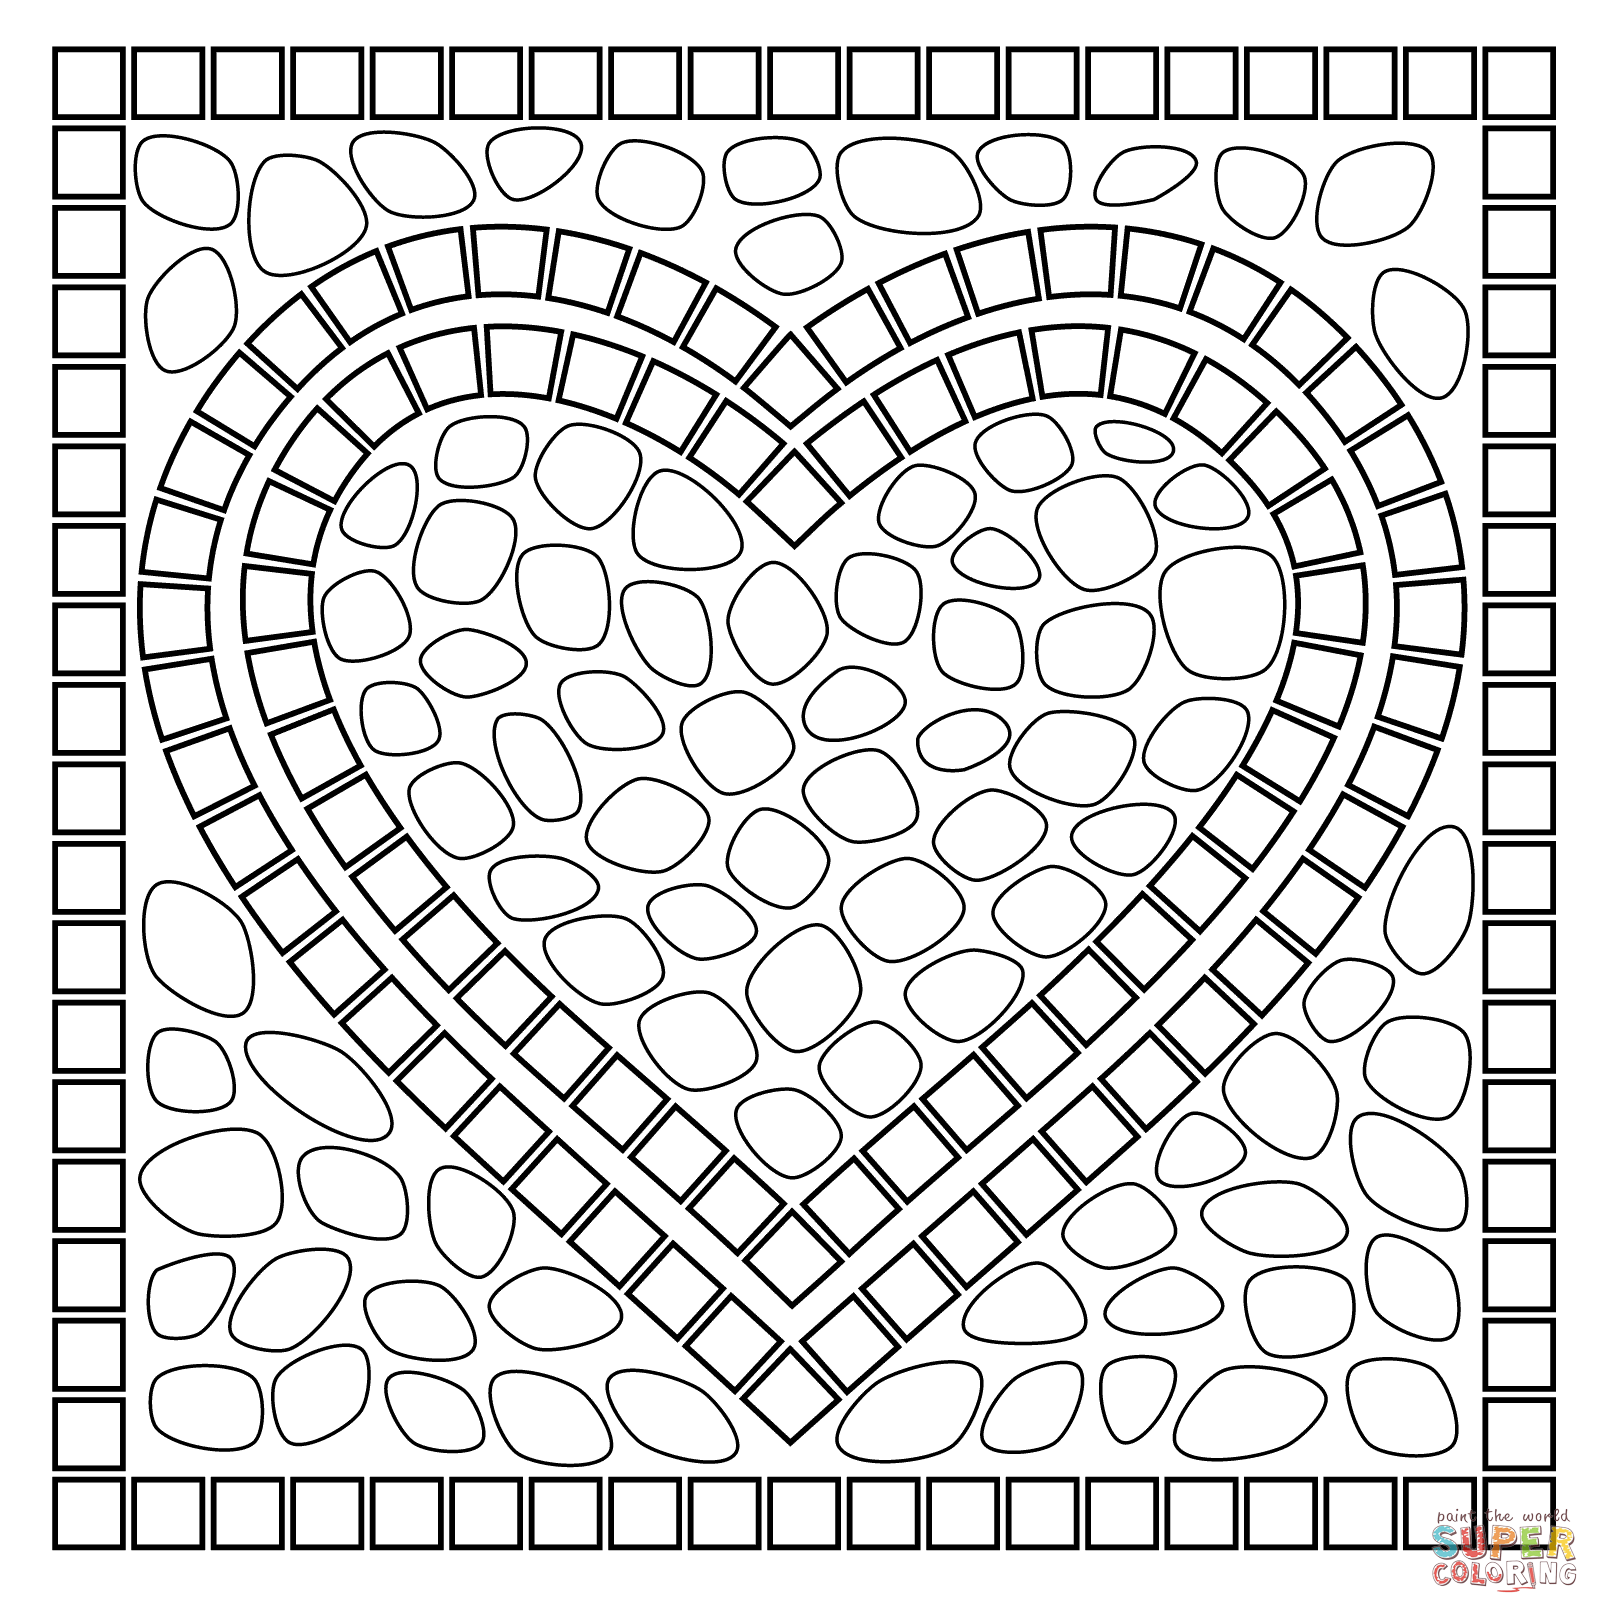 printable mosaic coloring book pages free printable mosaic coloring pages best of creative mosaic printable pages coloring book